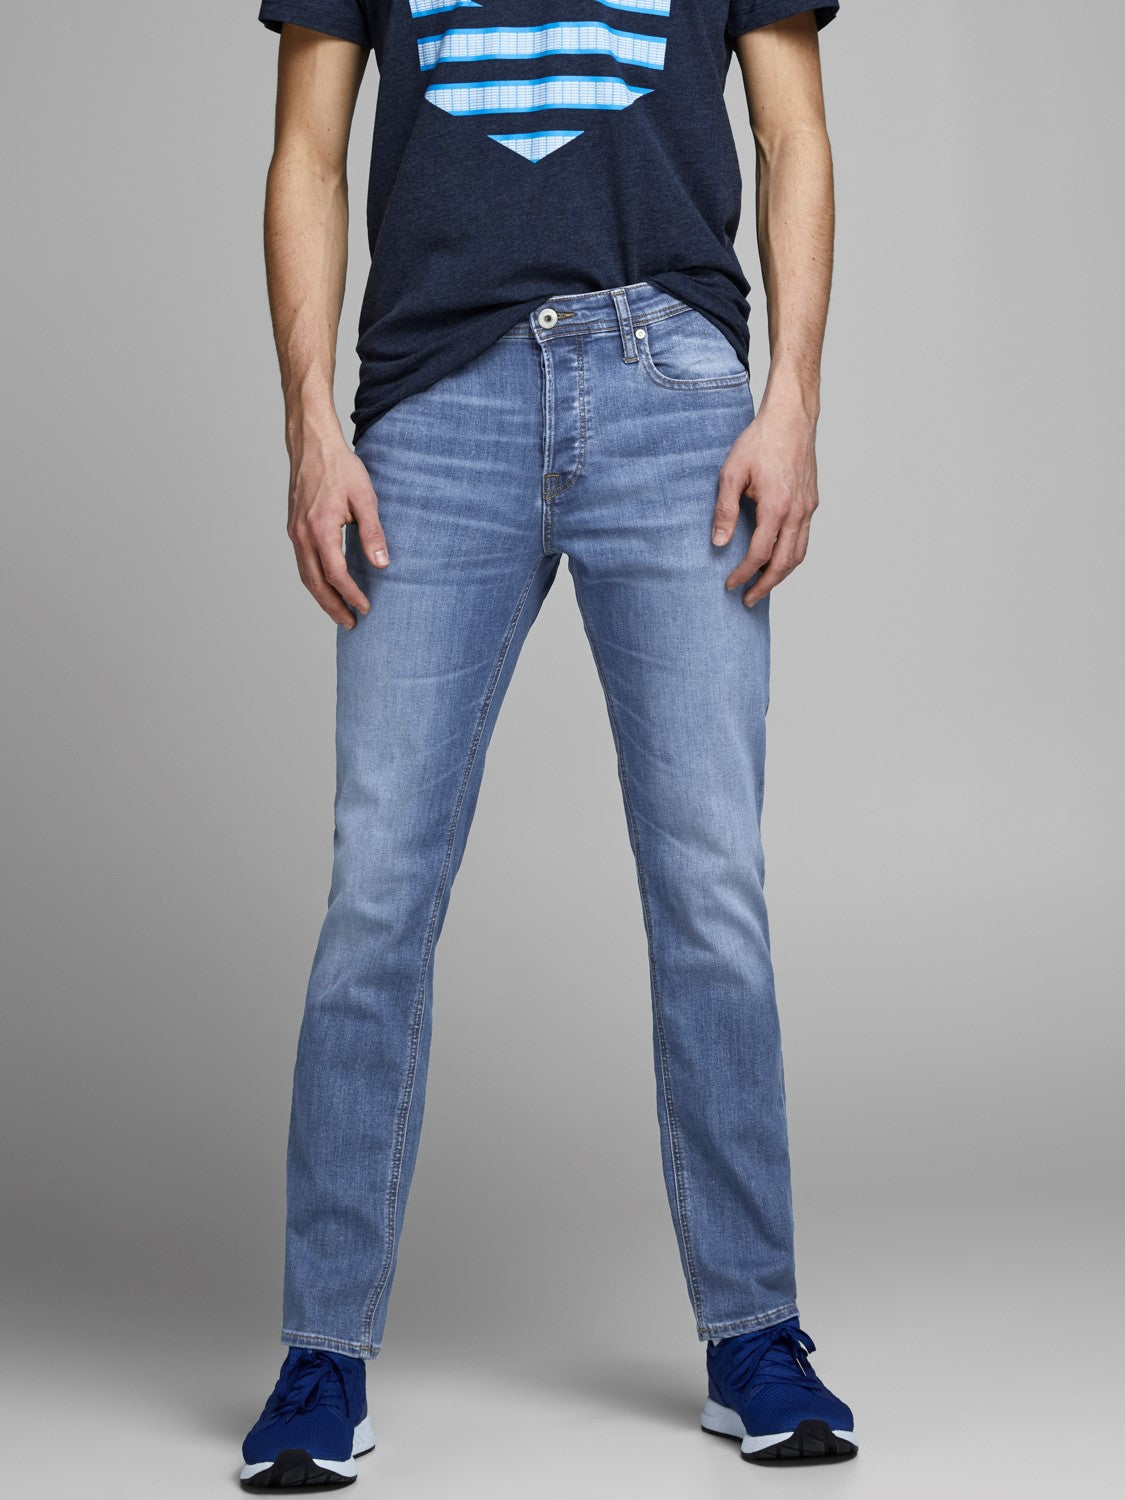 Jack & Jones Mens 'Glenn' Slim Fit Jeans